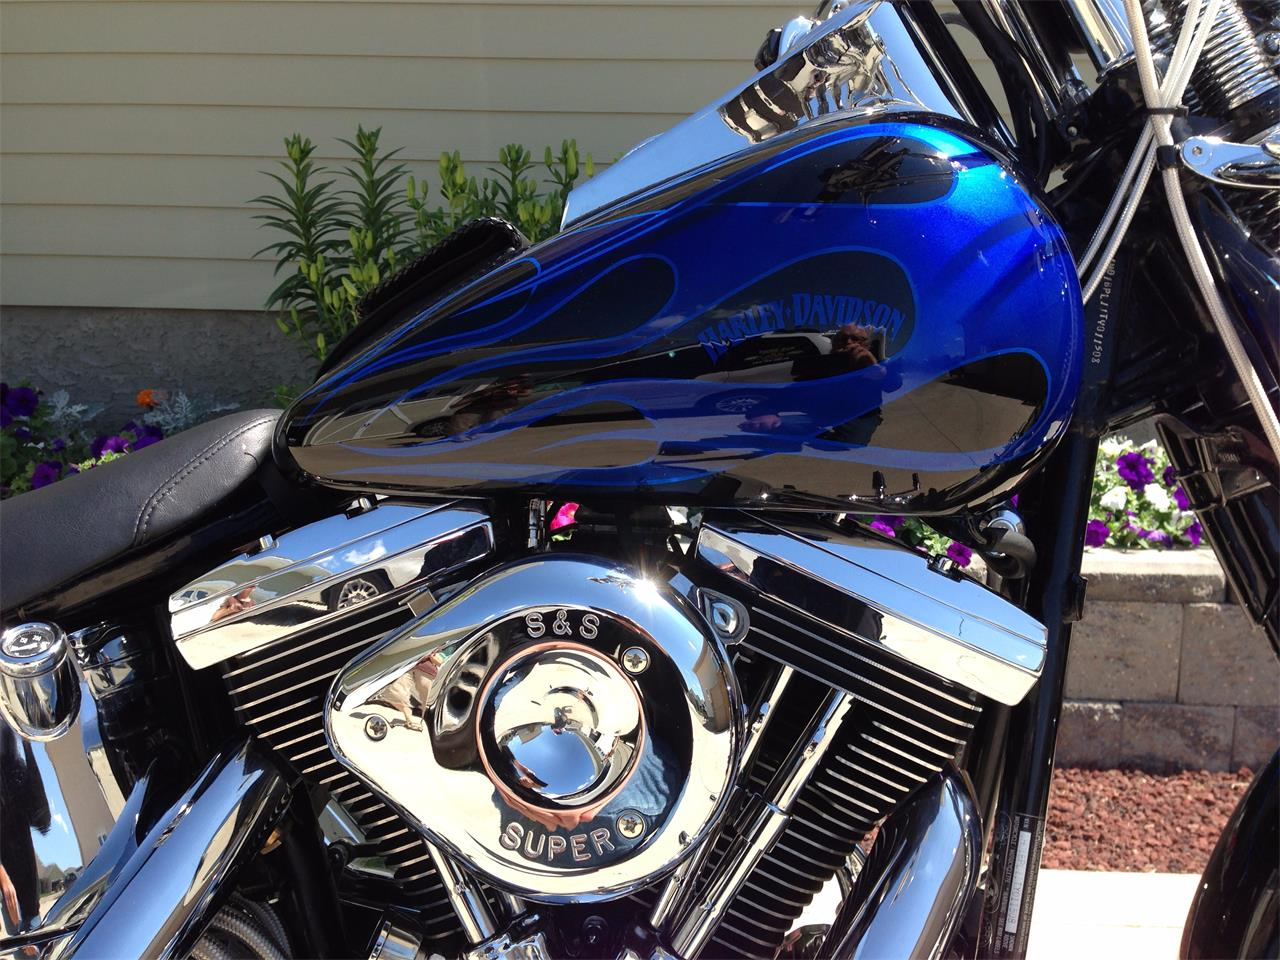 Large Picture of '96 Harley-Davidson Motorcycle located in Saskatchewan Offered by a Private Seller - QBI5